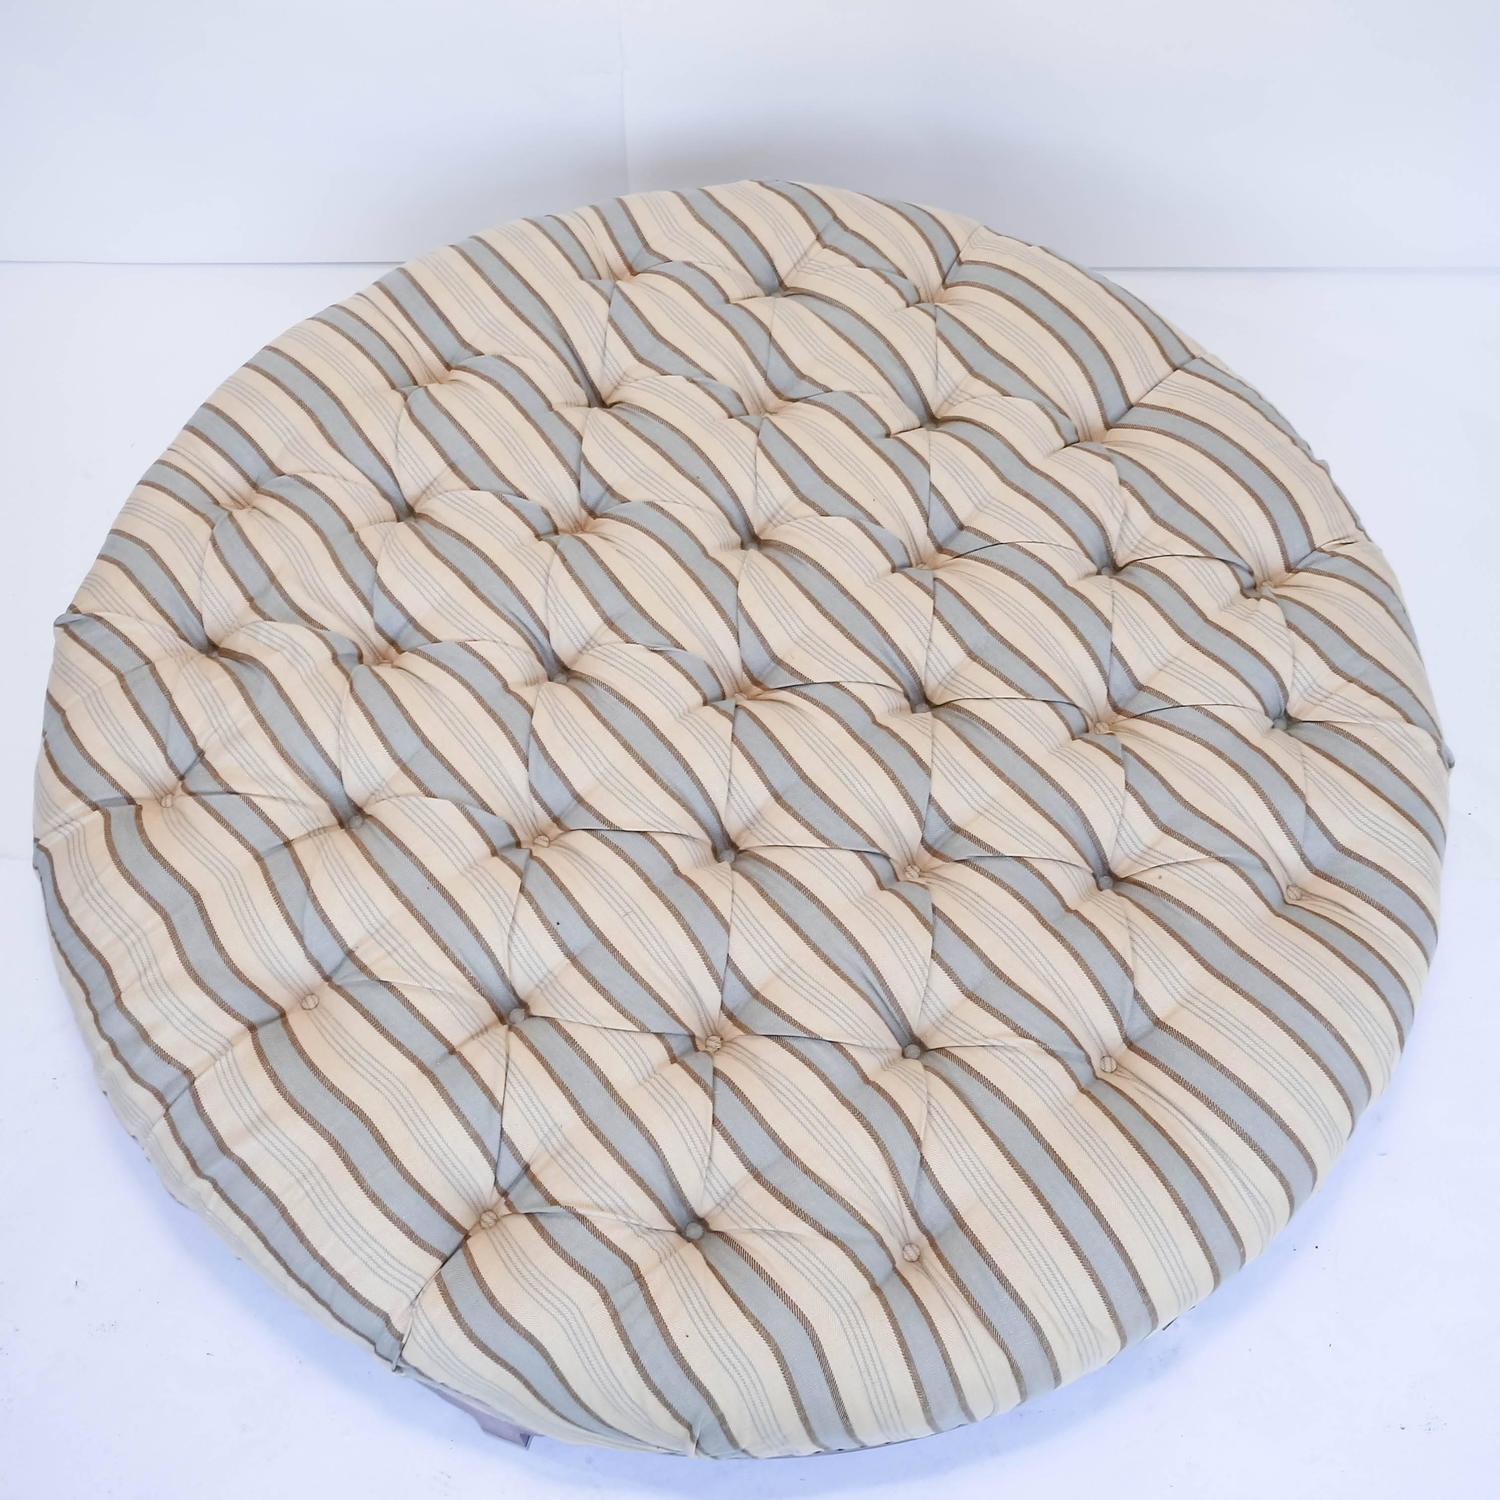 Large Round Ottoman : Large Round Tufted Ottoman with Striped Upholstery at 1stdibs